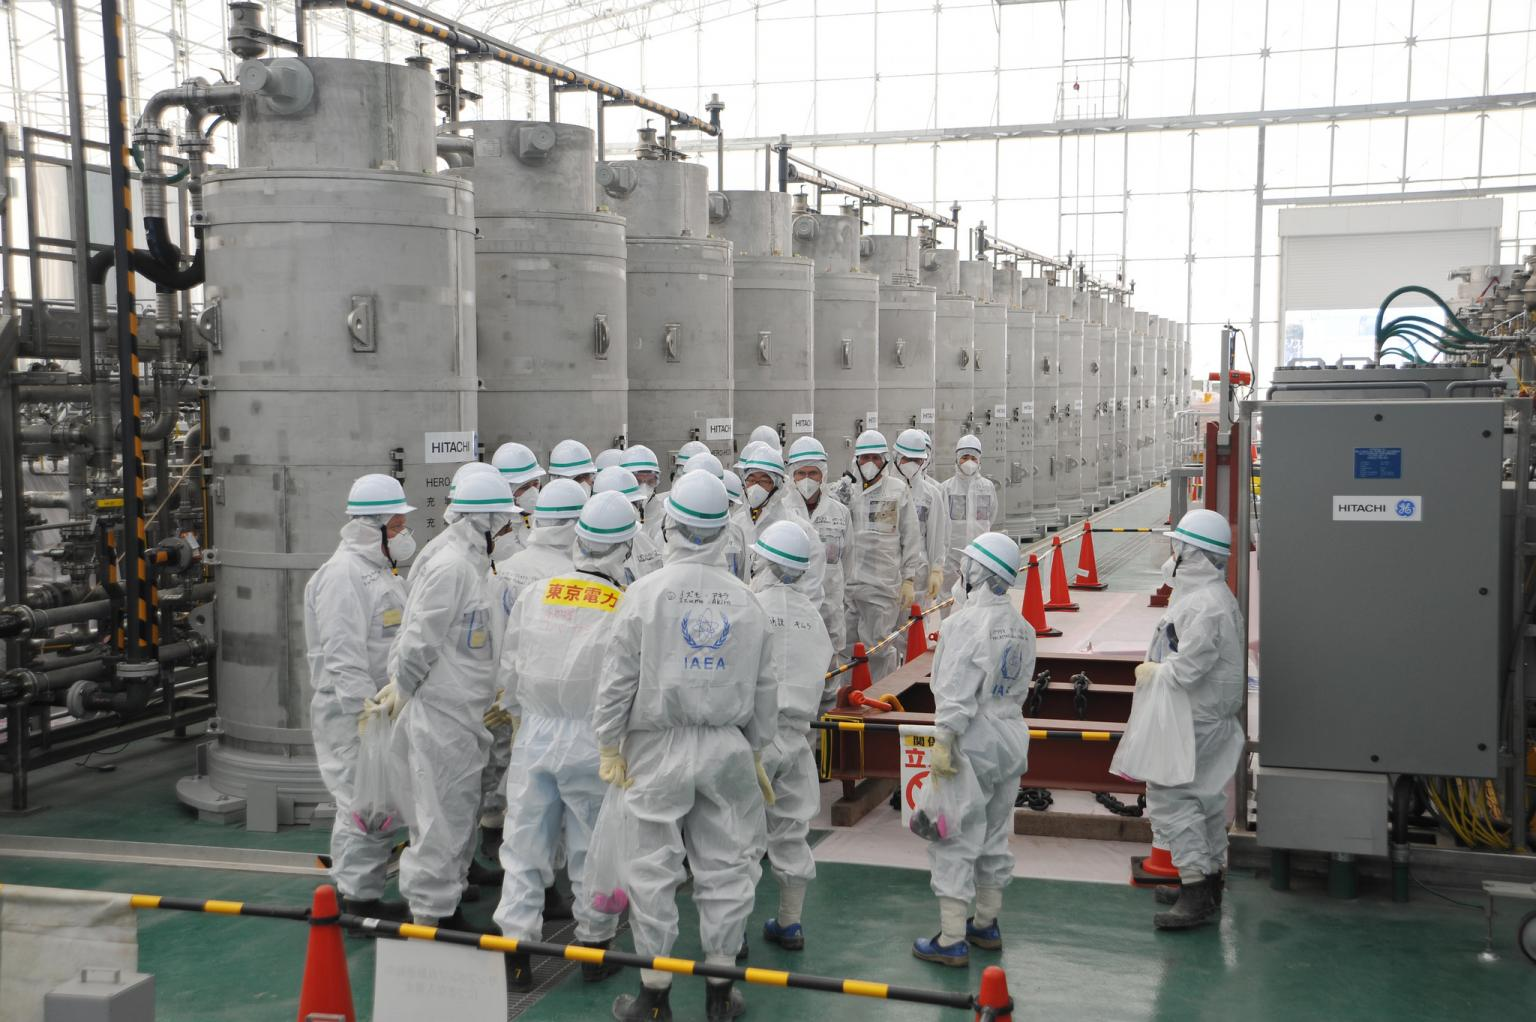 The IAEA mission team studies a water purification system that removes radioactive elements from water. Fukushima, Japan, 11 February 2015. Photo Credit: Susanna Loof/IAEA